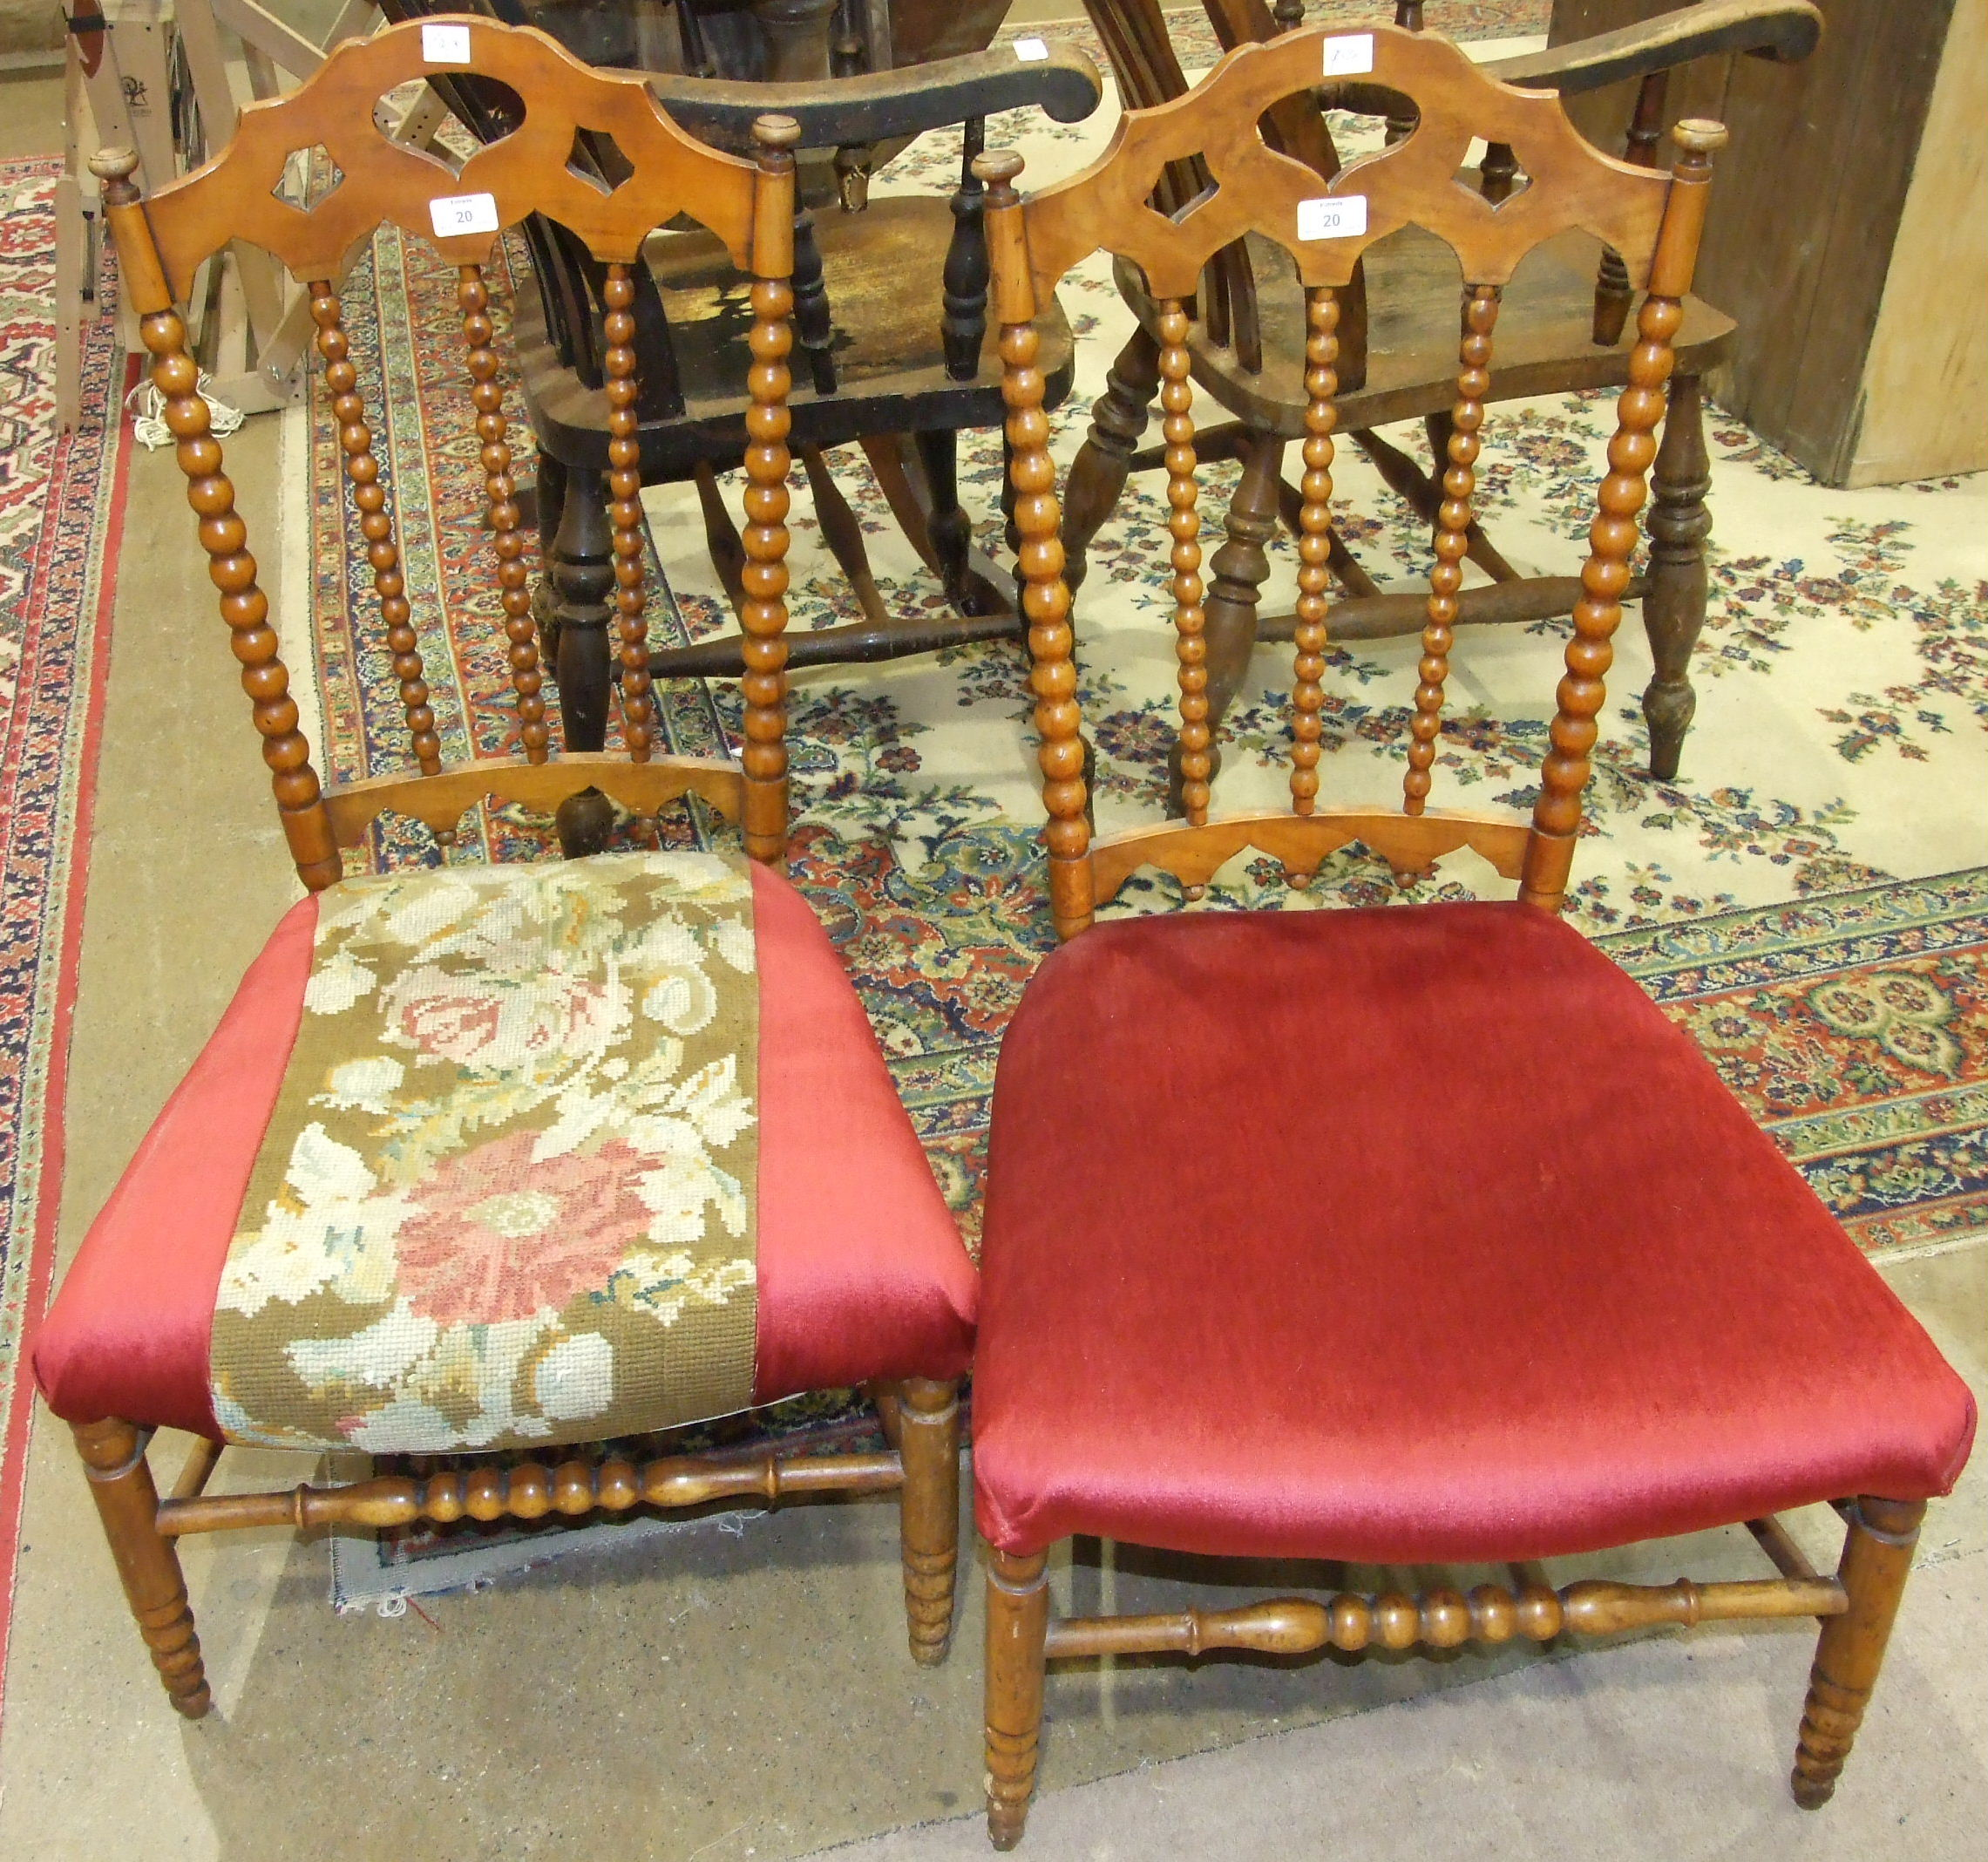 Lot 20 - A pair of 19th century fruit wood bobbin-turned nursing chairs, with open backs and upholstered